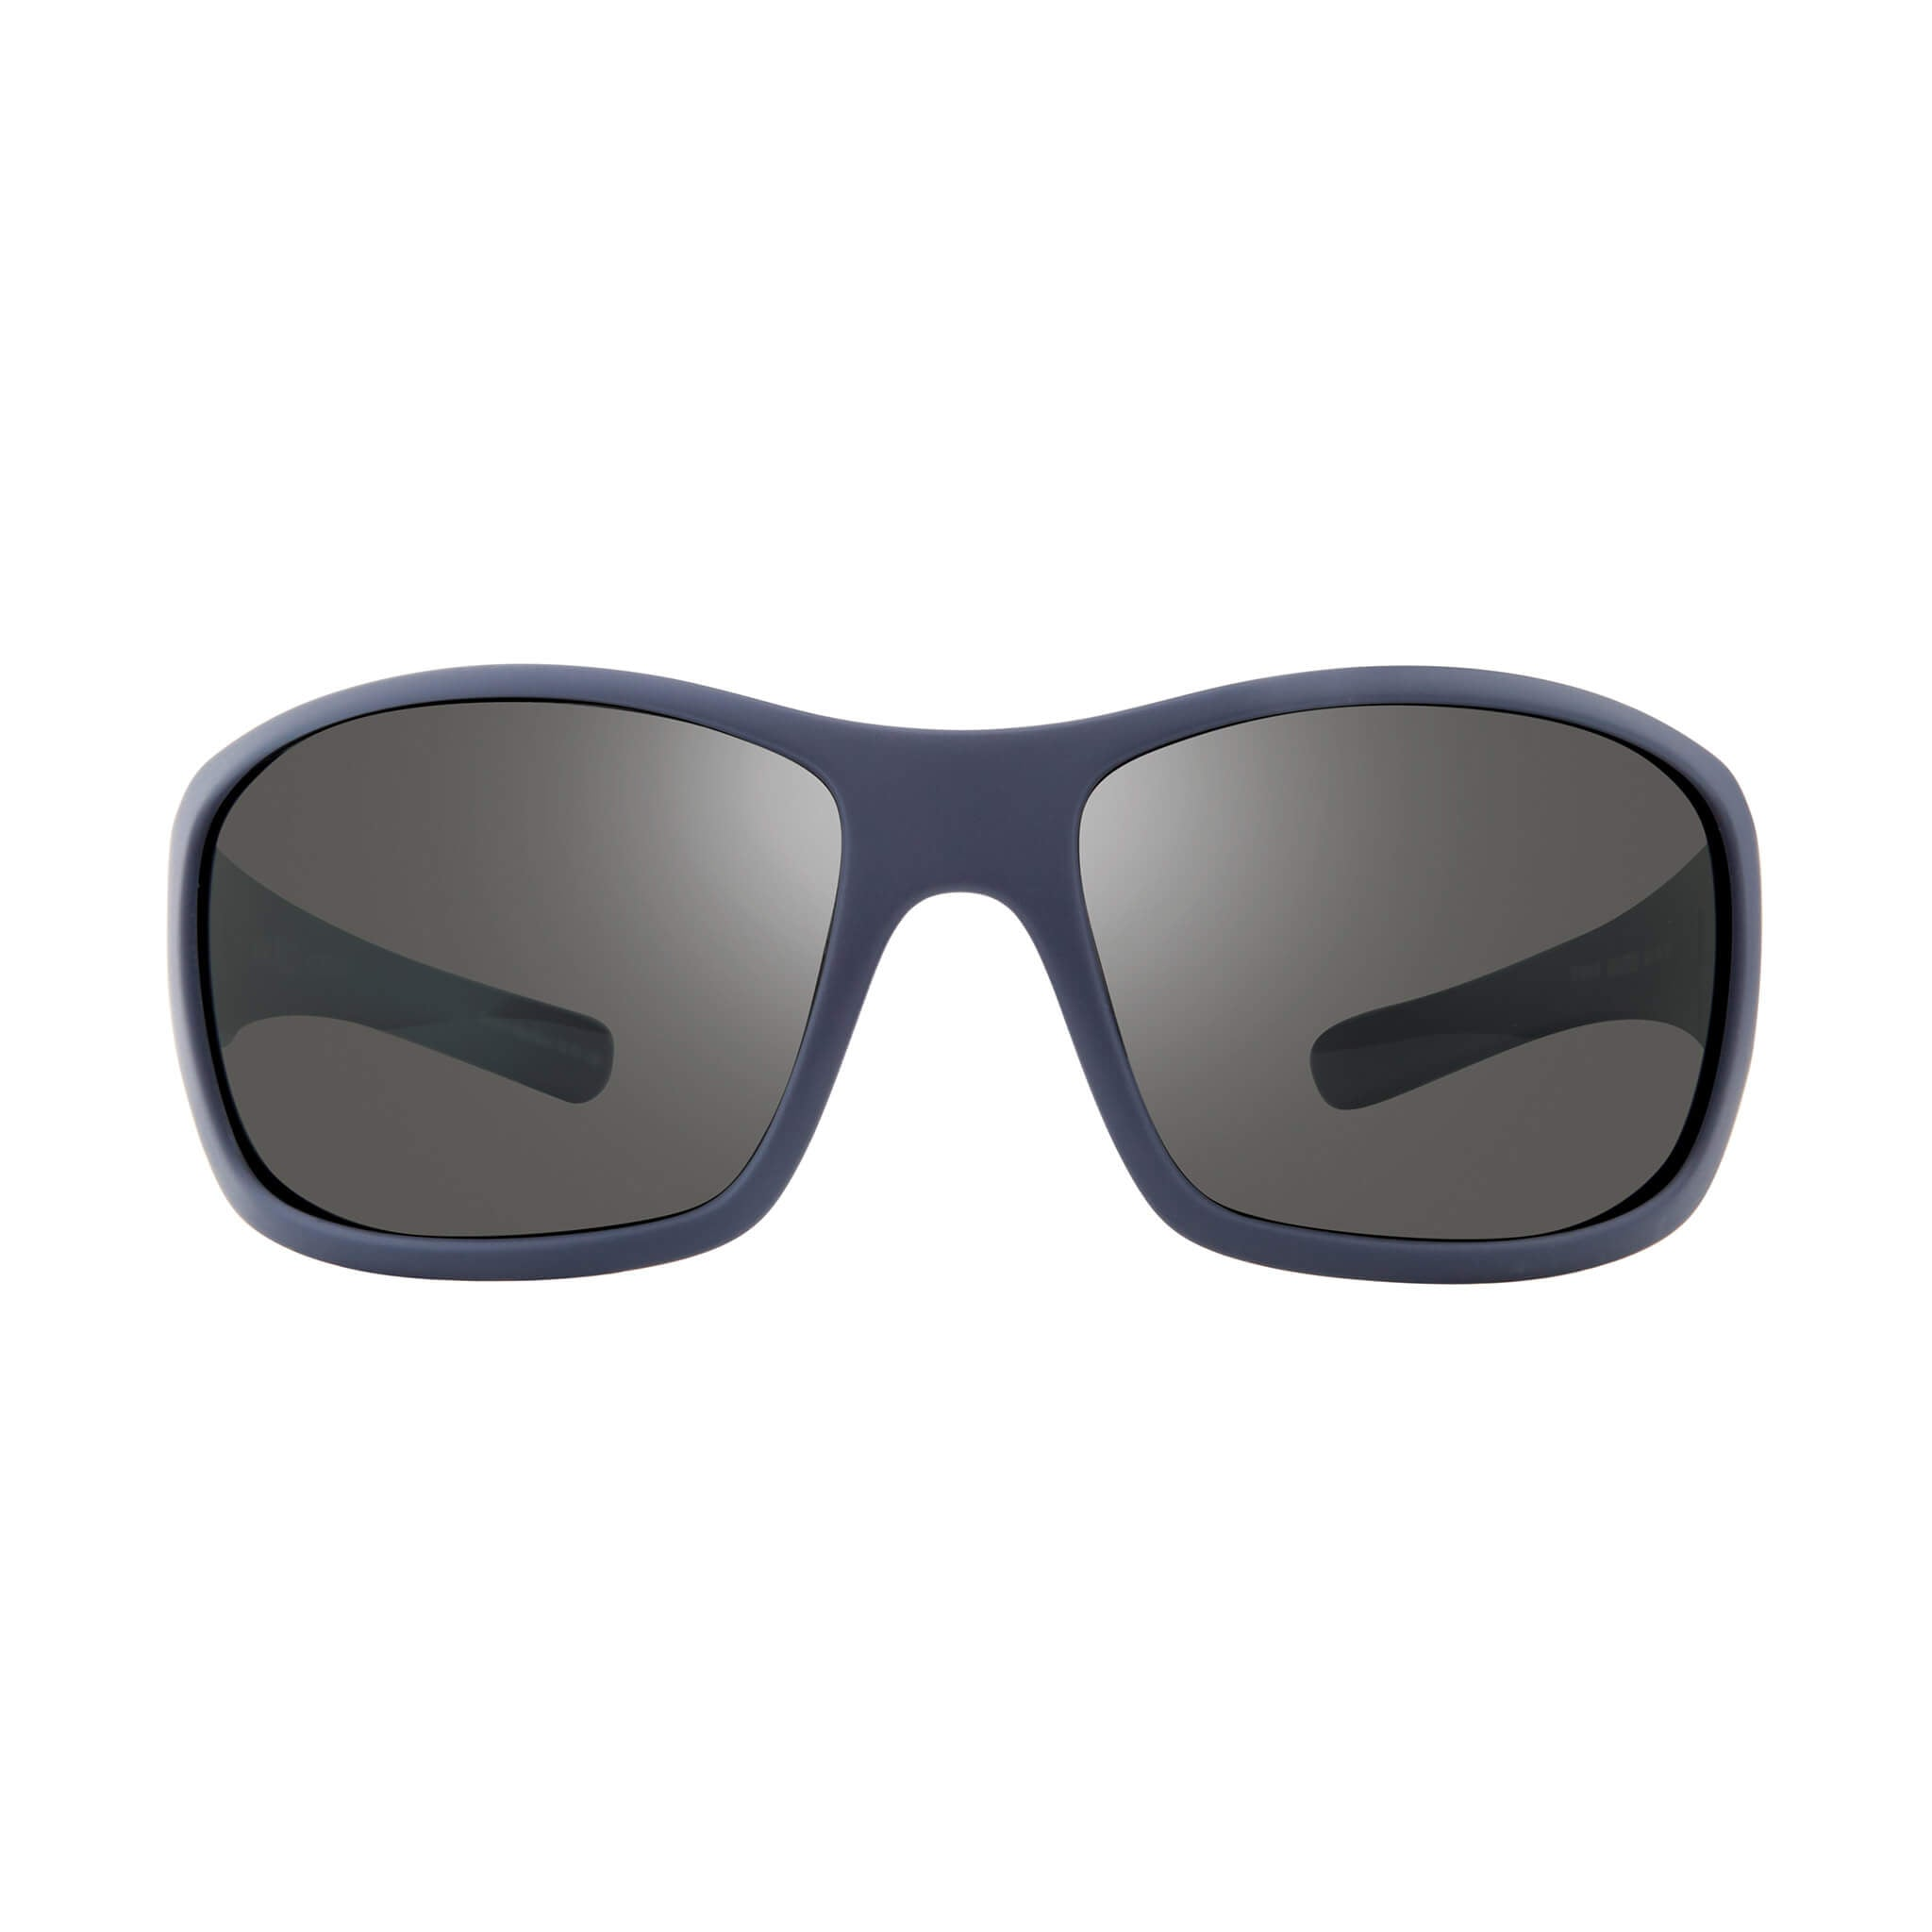 Maverick Blue + graphite lens:Front view of Bear Grylls Revo Blue with Graphite lens sunglasses